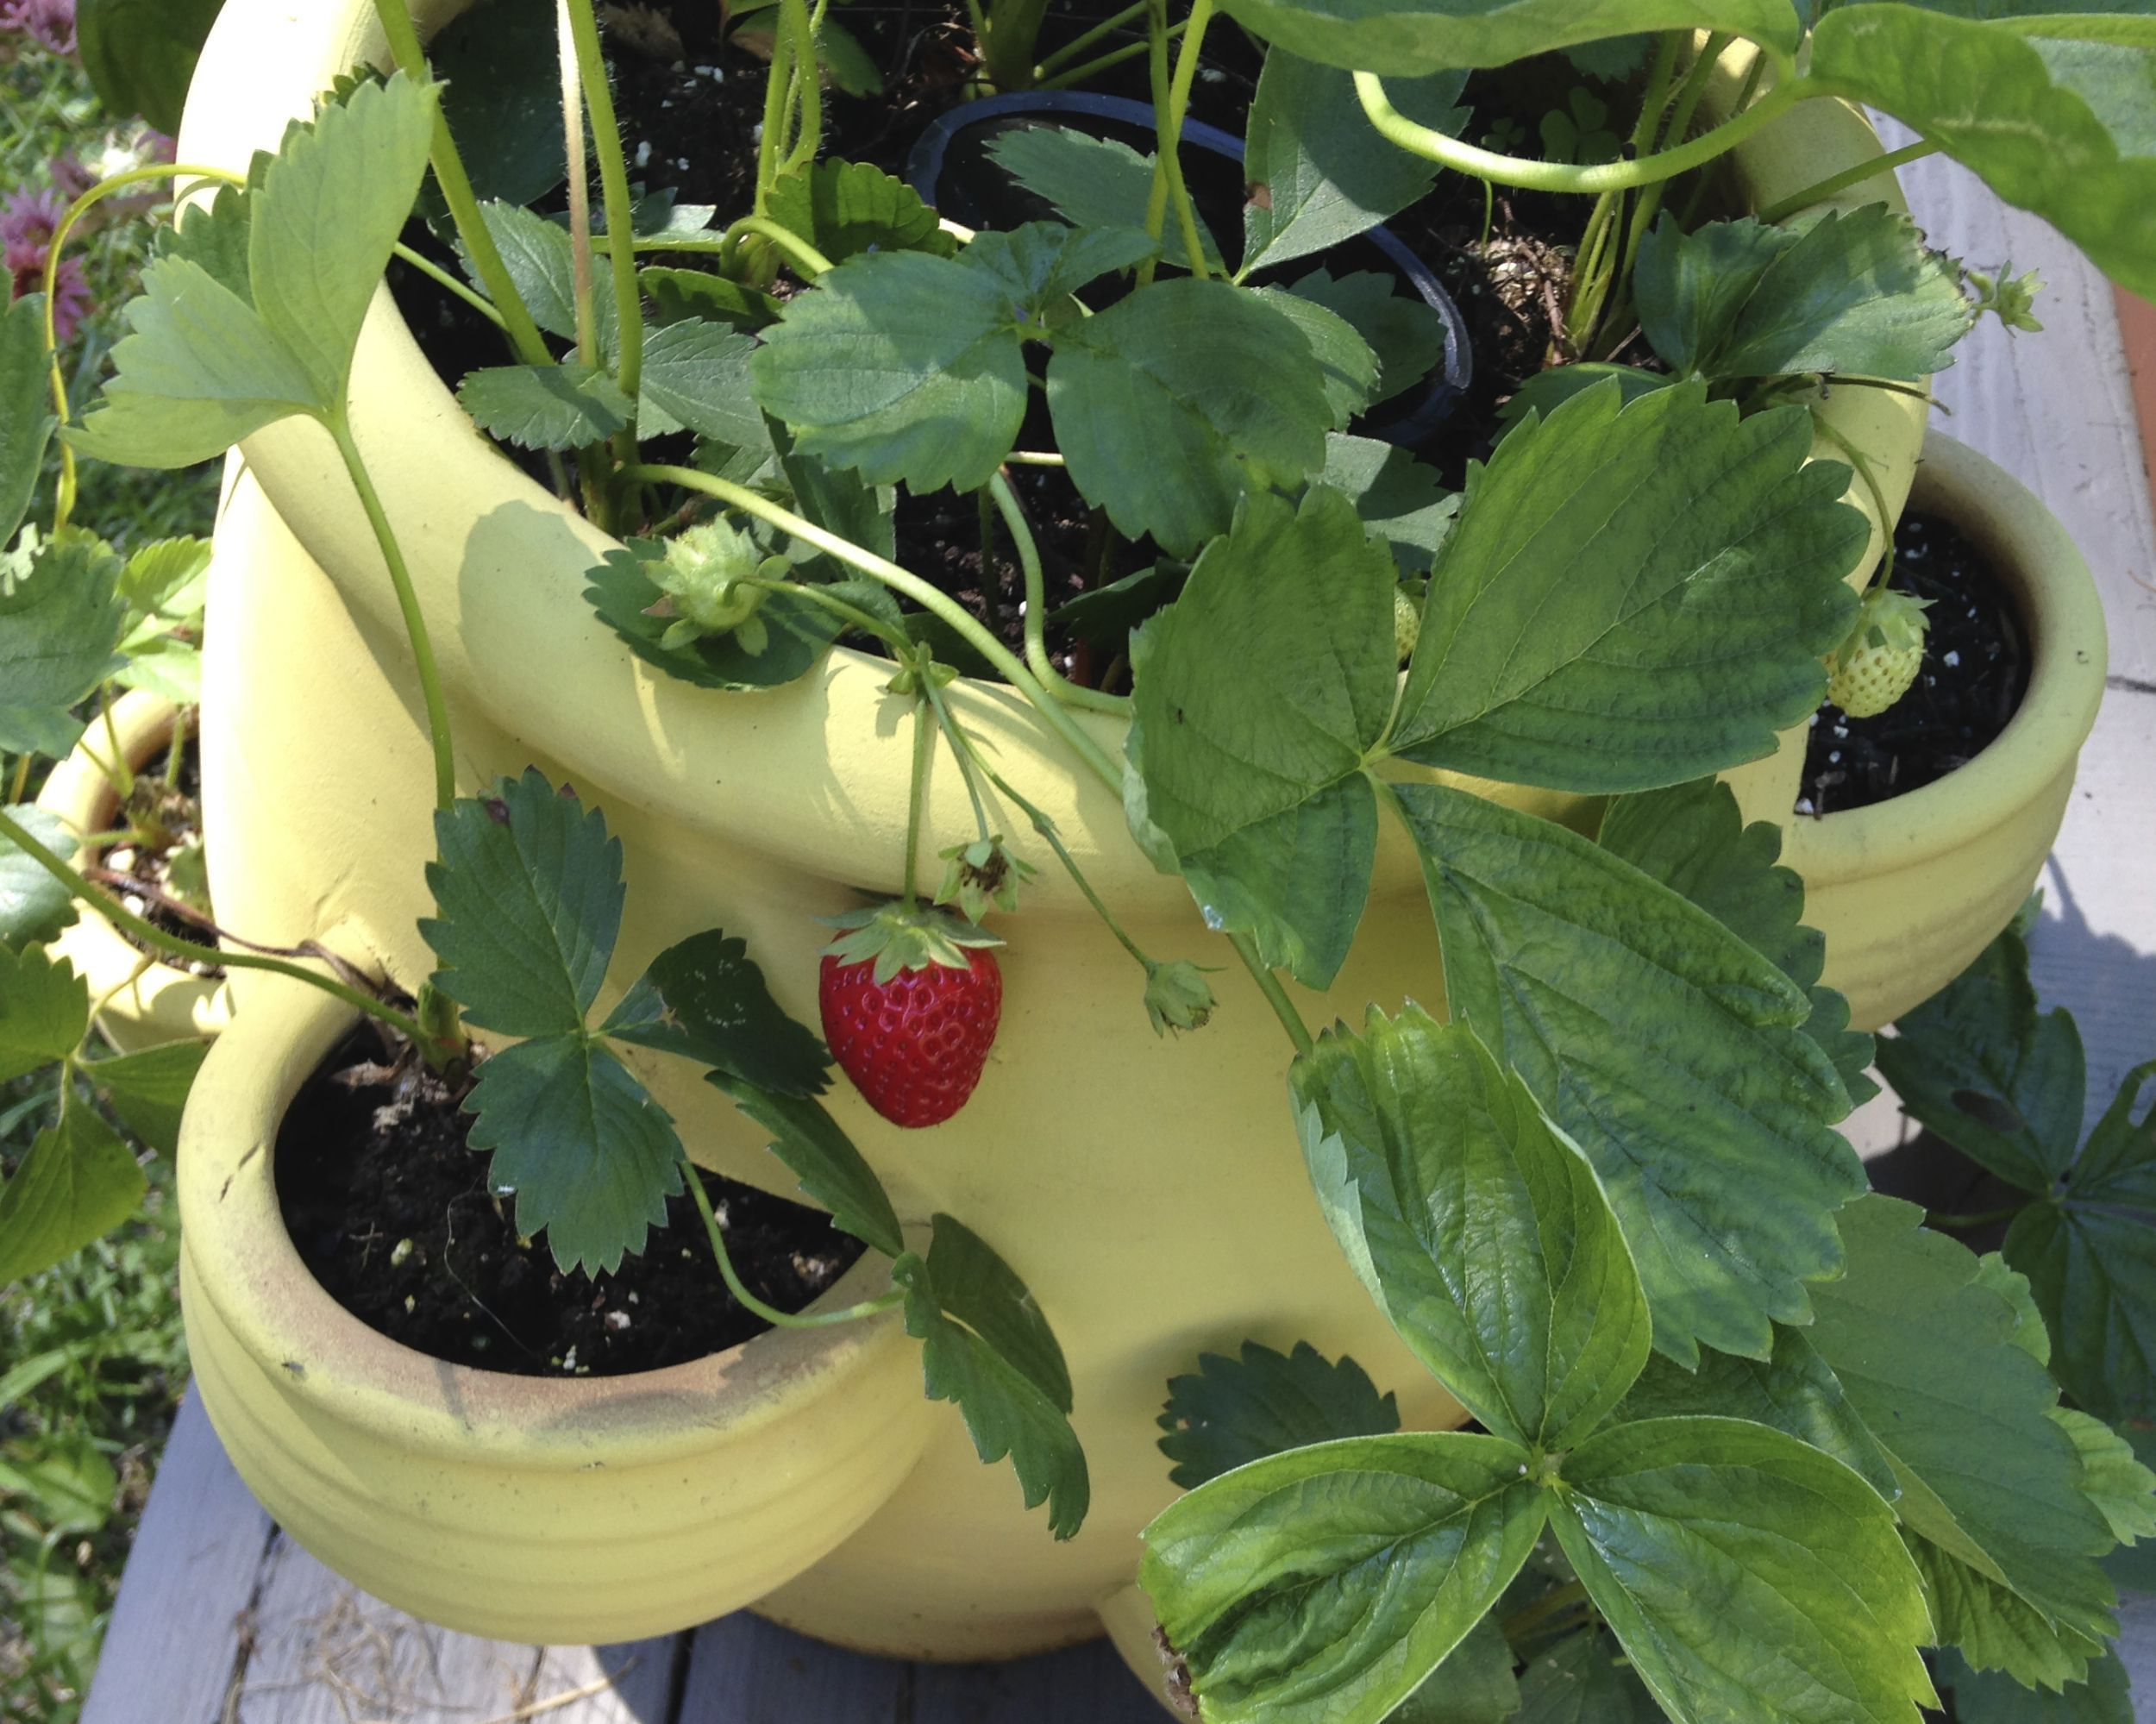 How to grow beautiful and tasty strawberries in pots. #growingstrawberriesincontainers Growing strawberries in pots are easy. Growing strawberries in container gardens can also be beautiful, and you should consider the possibilities. #growingstrawberriesincontainers How to grow beautiful and tasty strawberries in pots. #growingstrawberriesincontainers Growing strawberries in pots are easy. Growing strawberries in container gardens can also be beautiful, and you should consider the possibilities. #growingstrawberriesincontainers